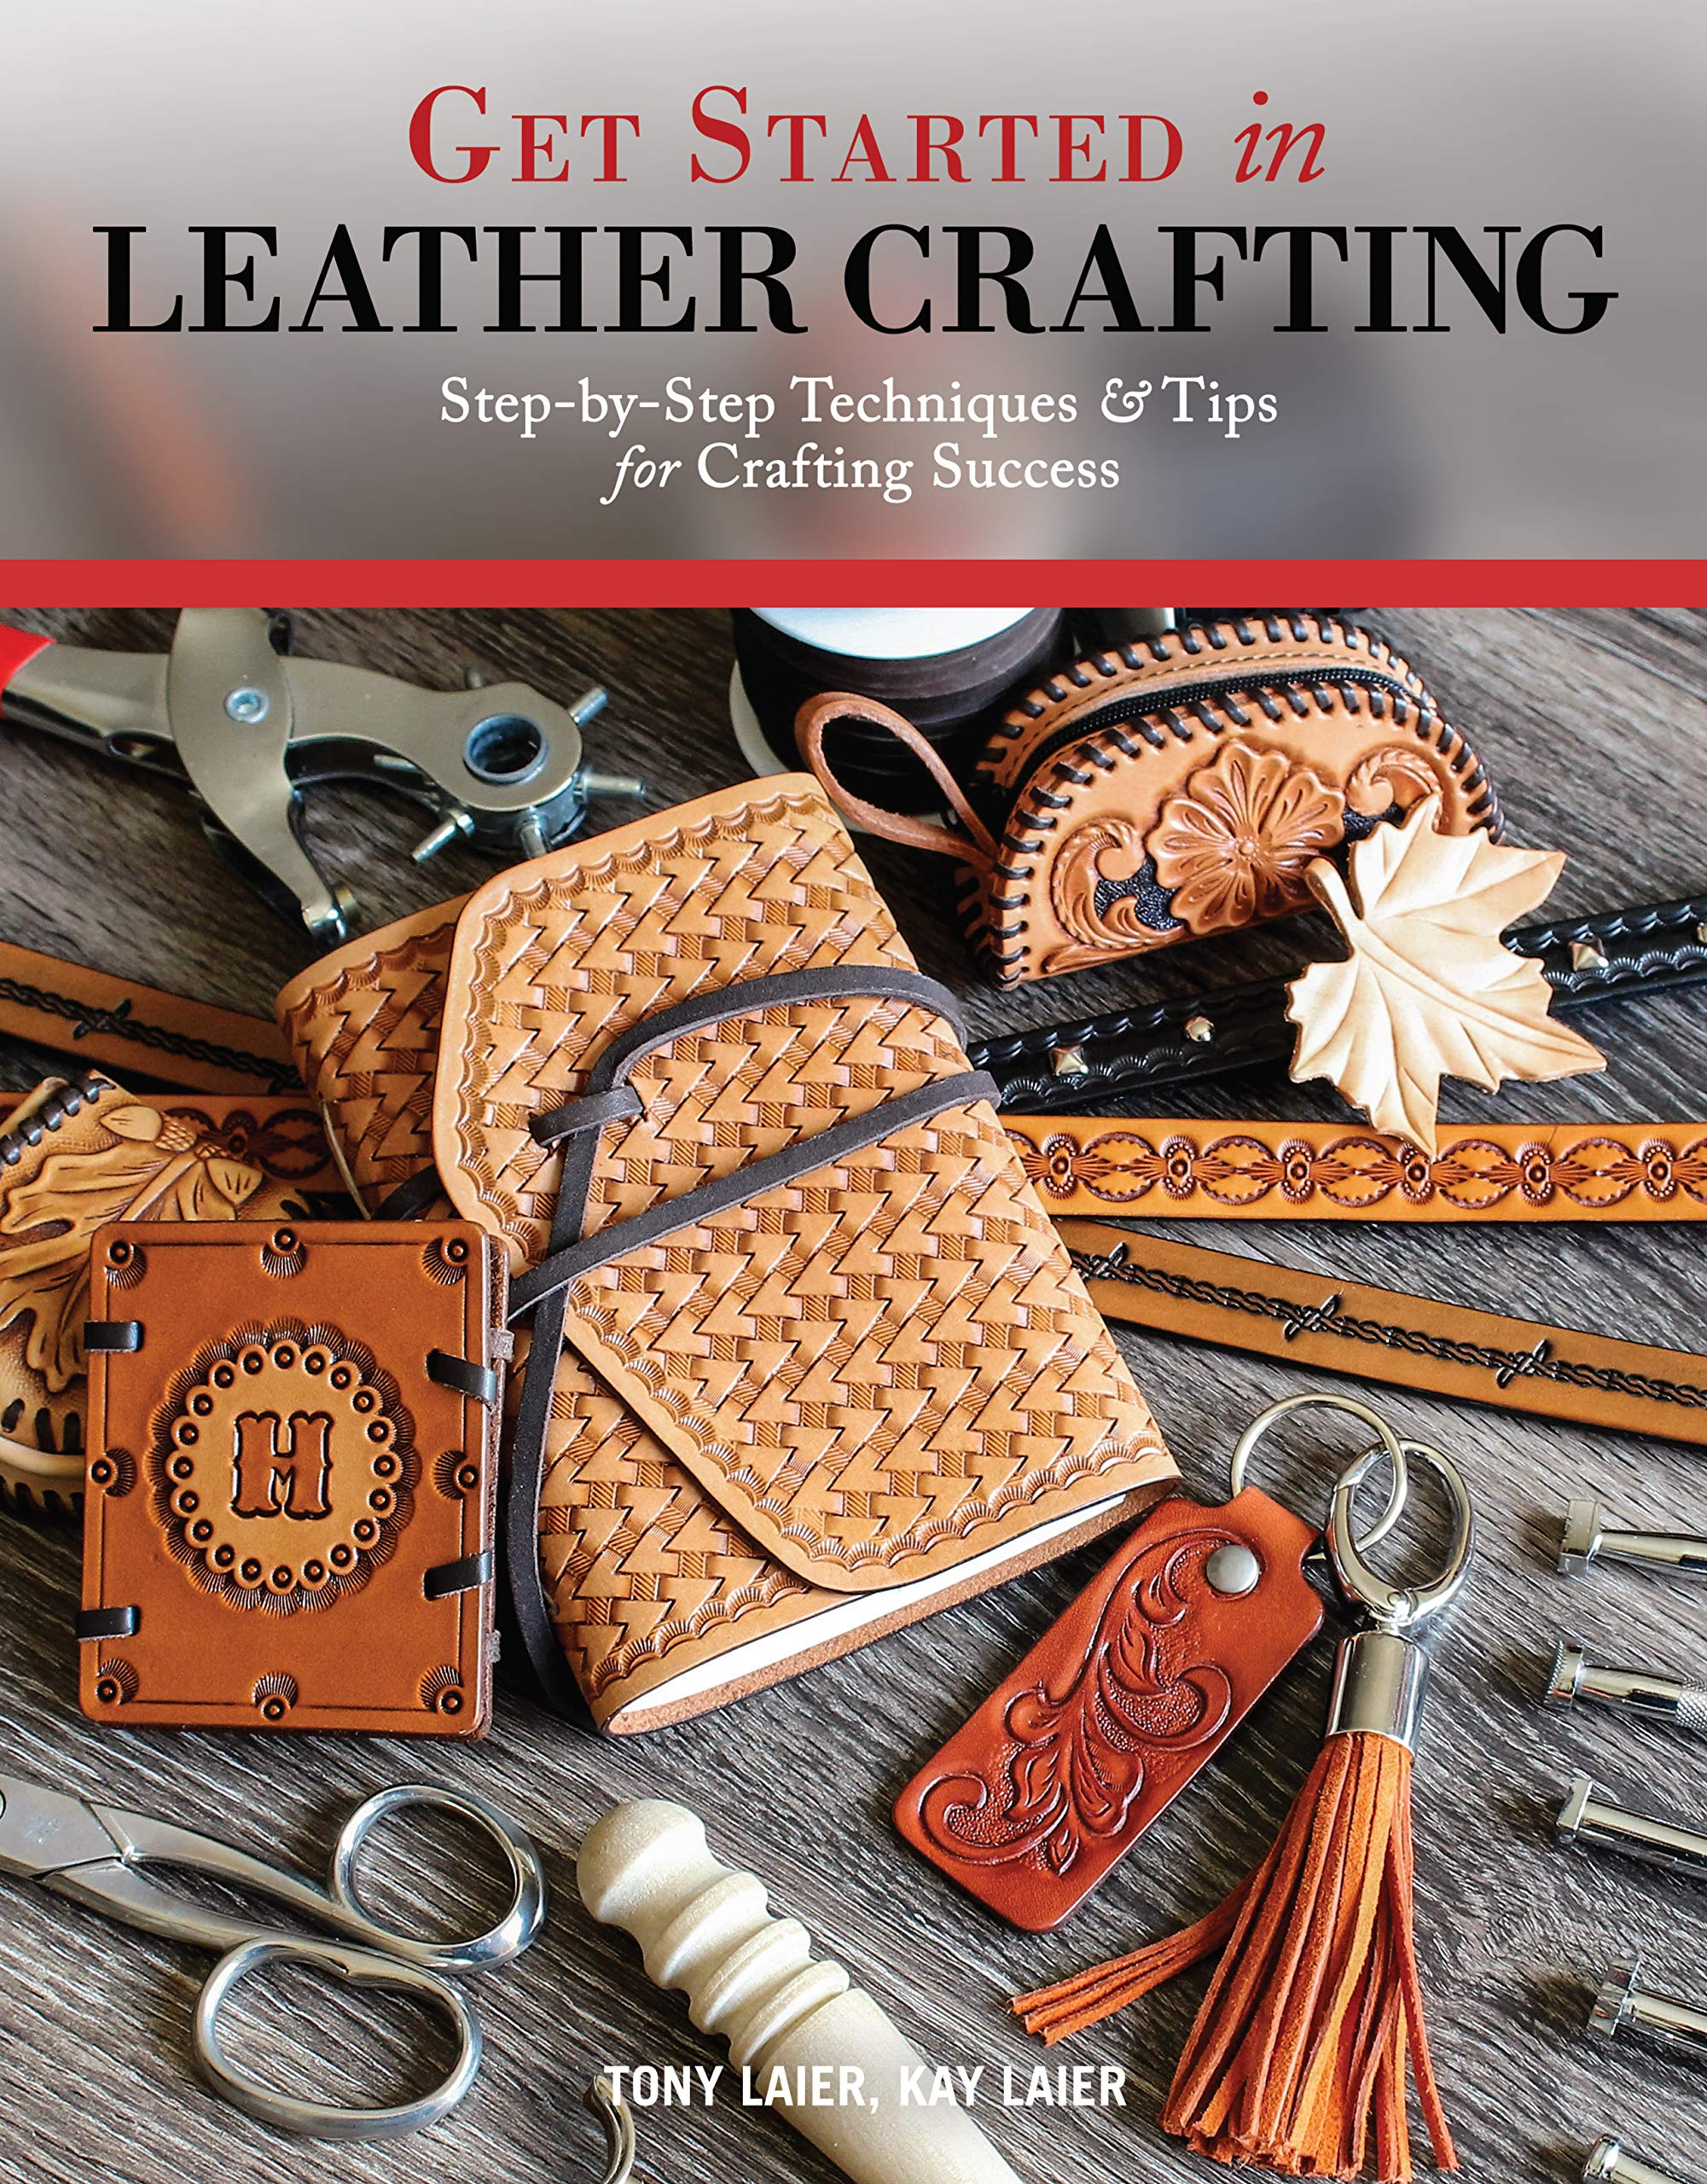 check 16 available patterns in this category not for sale please do not purchase For the Boys and Guys embossing pattern options